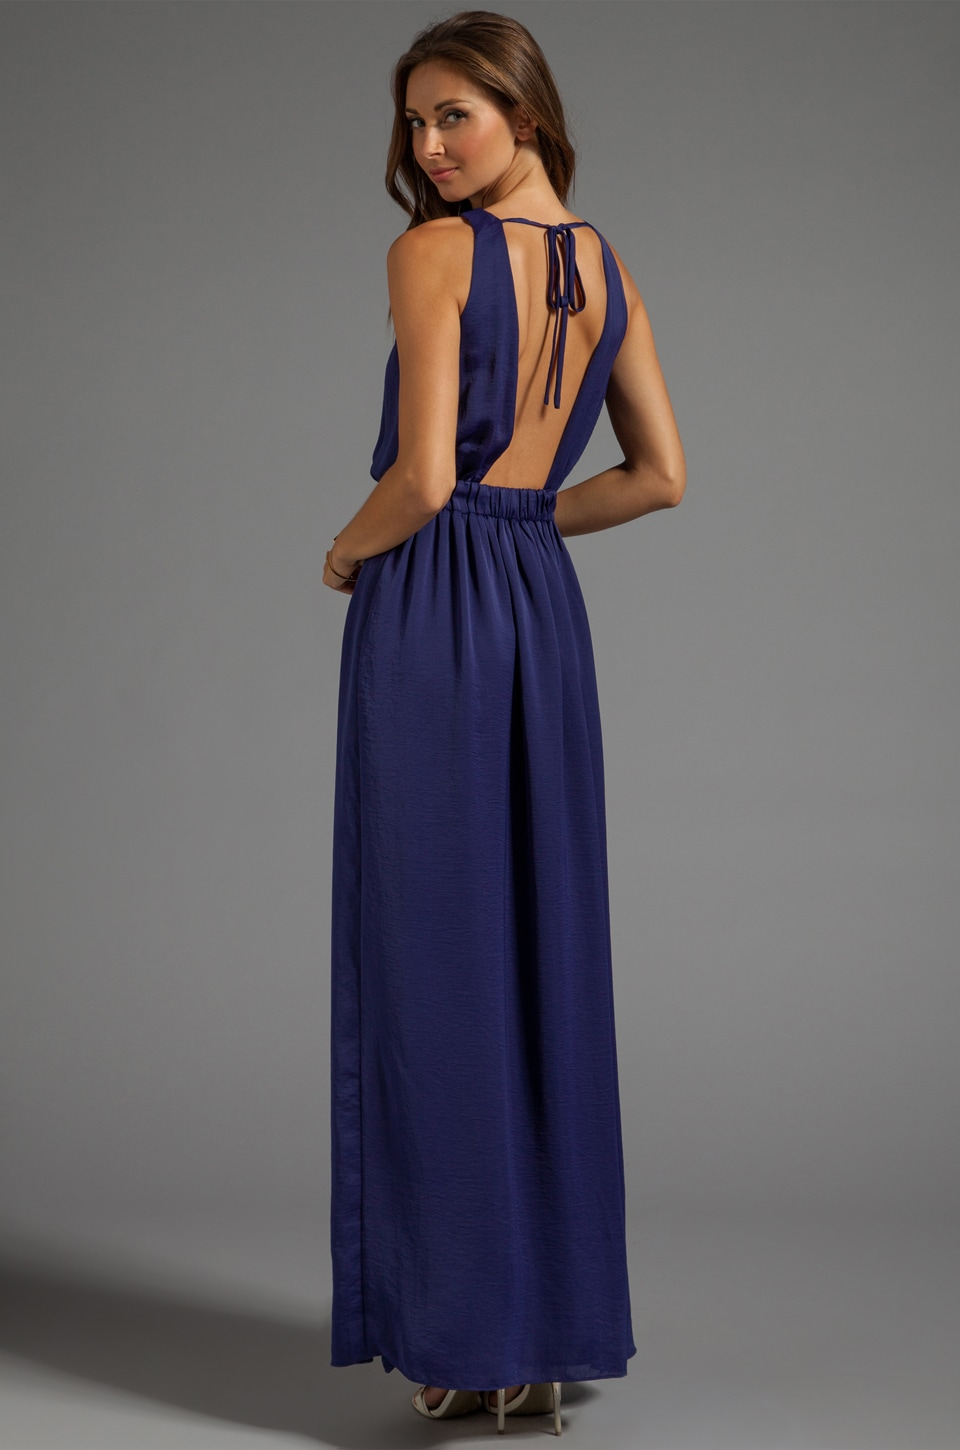 BLAQUE LABEL High Slit Maxi Dress in Dark Blue